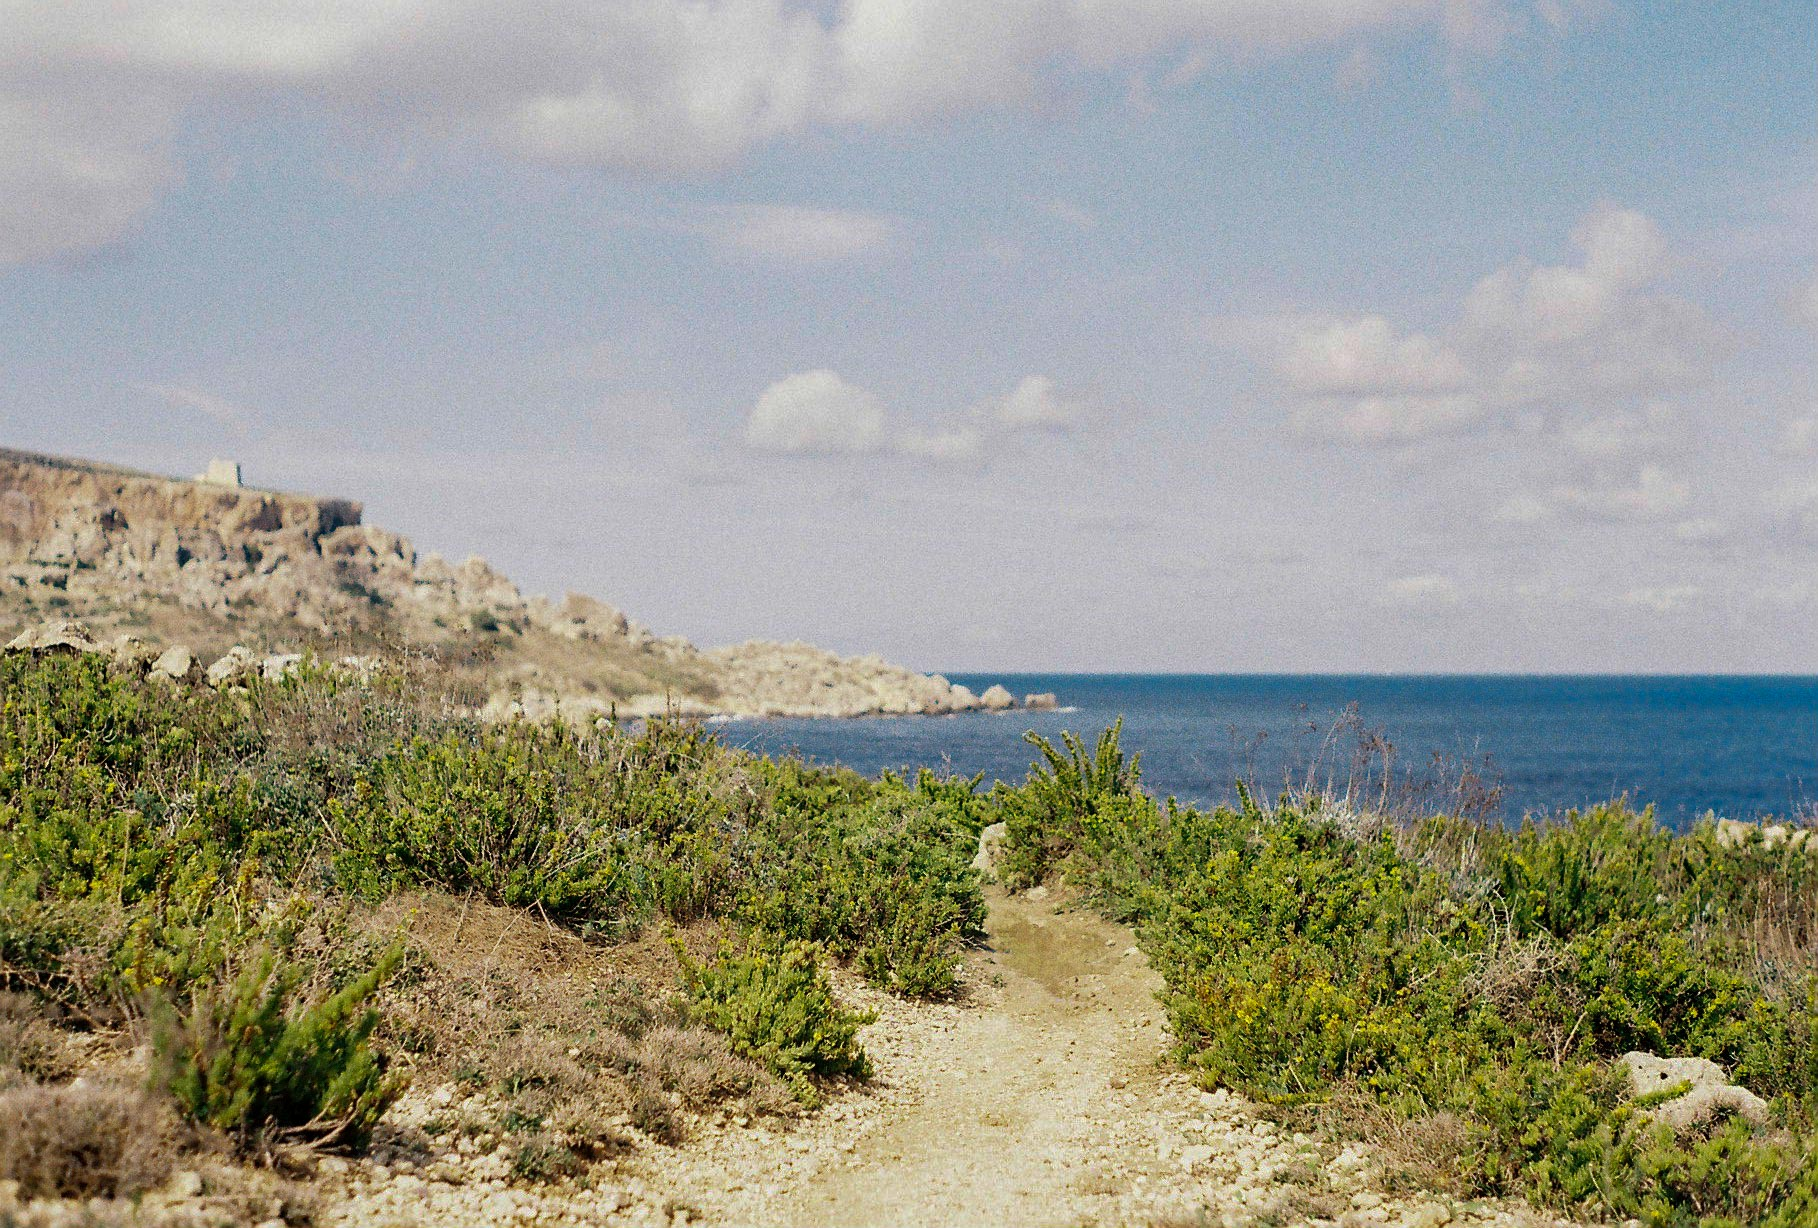 Coastal path, South Malta, October 2018. Pentax K1000, Kodak Colour 250